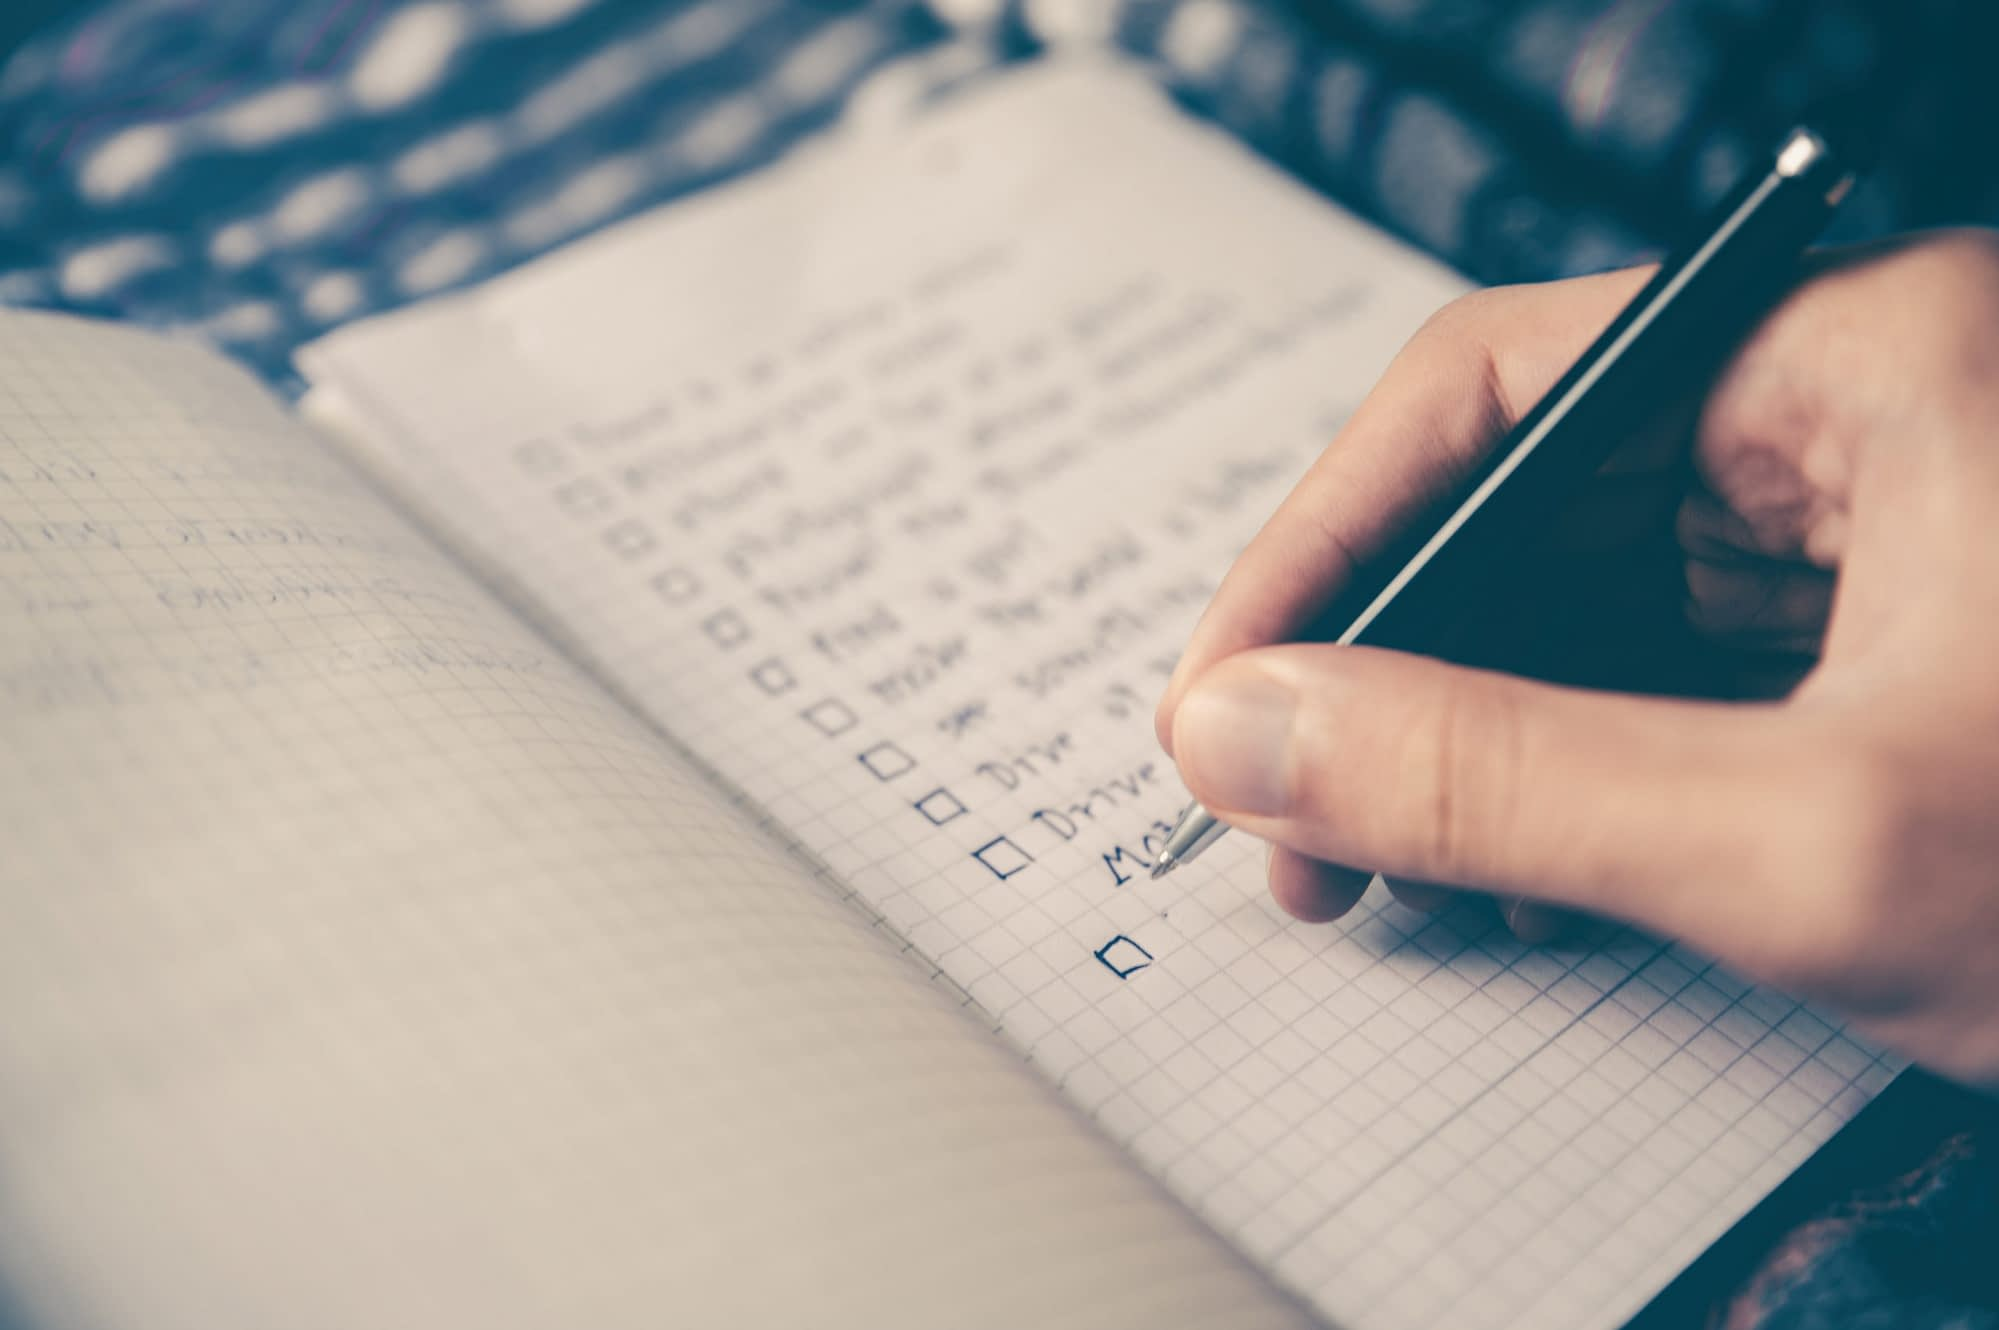 website maintenance services cover with person writing bucket list on book